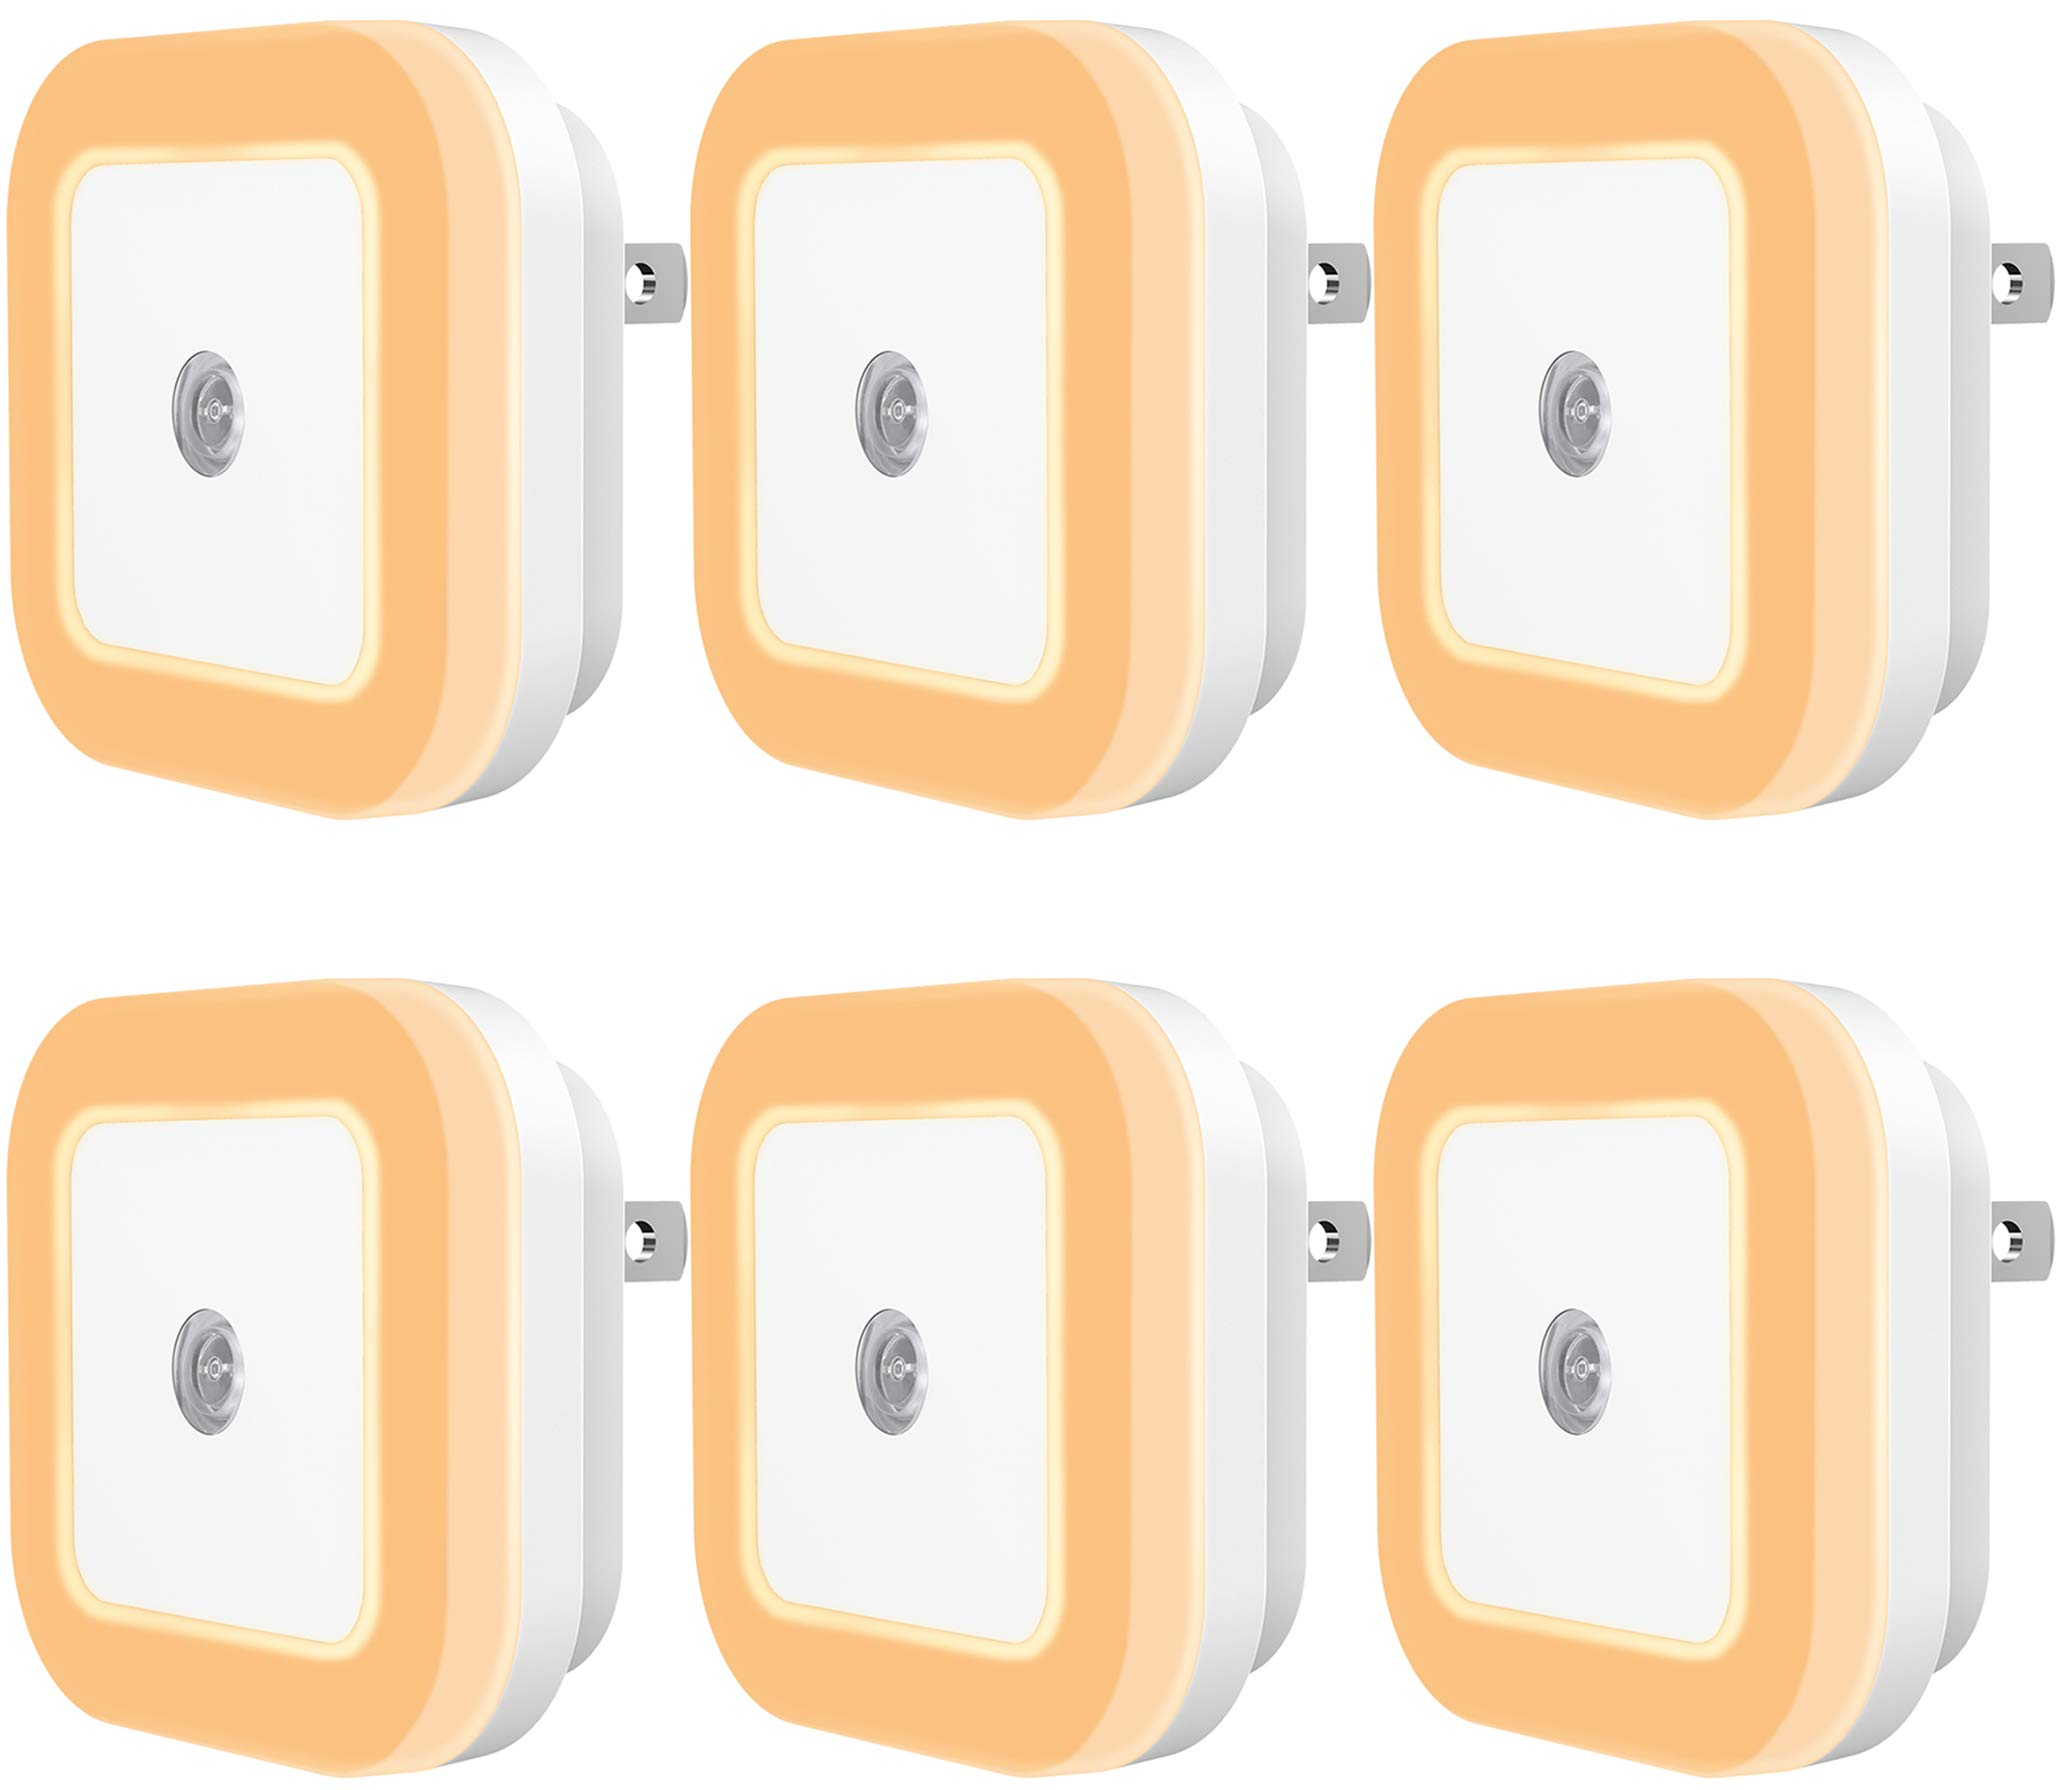 Sycees Plug-in LED Night Light with Dusk-to-Dawn Sensor for Bedroom, Bathroom, Kitchen, Hallway, Stairs, Warm White, 6-Pack by SYCEES